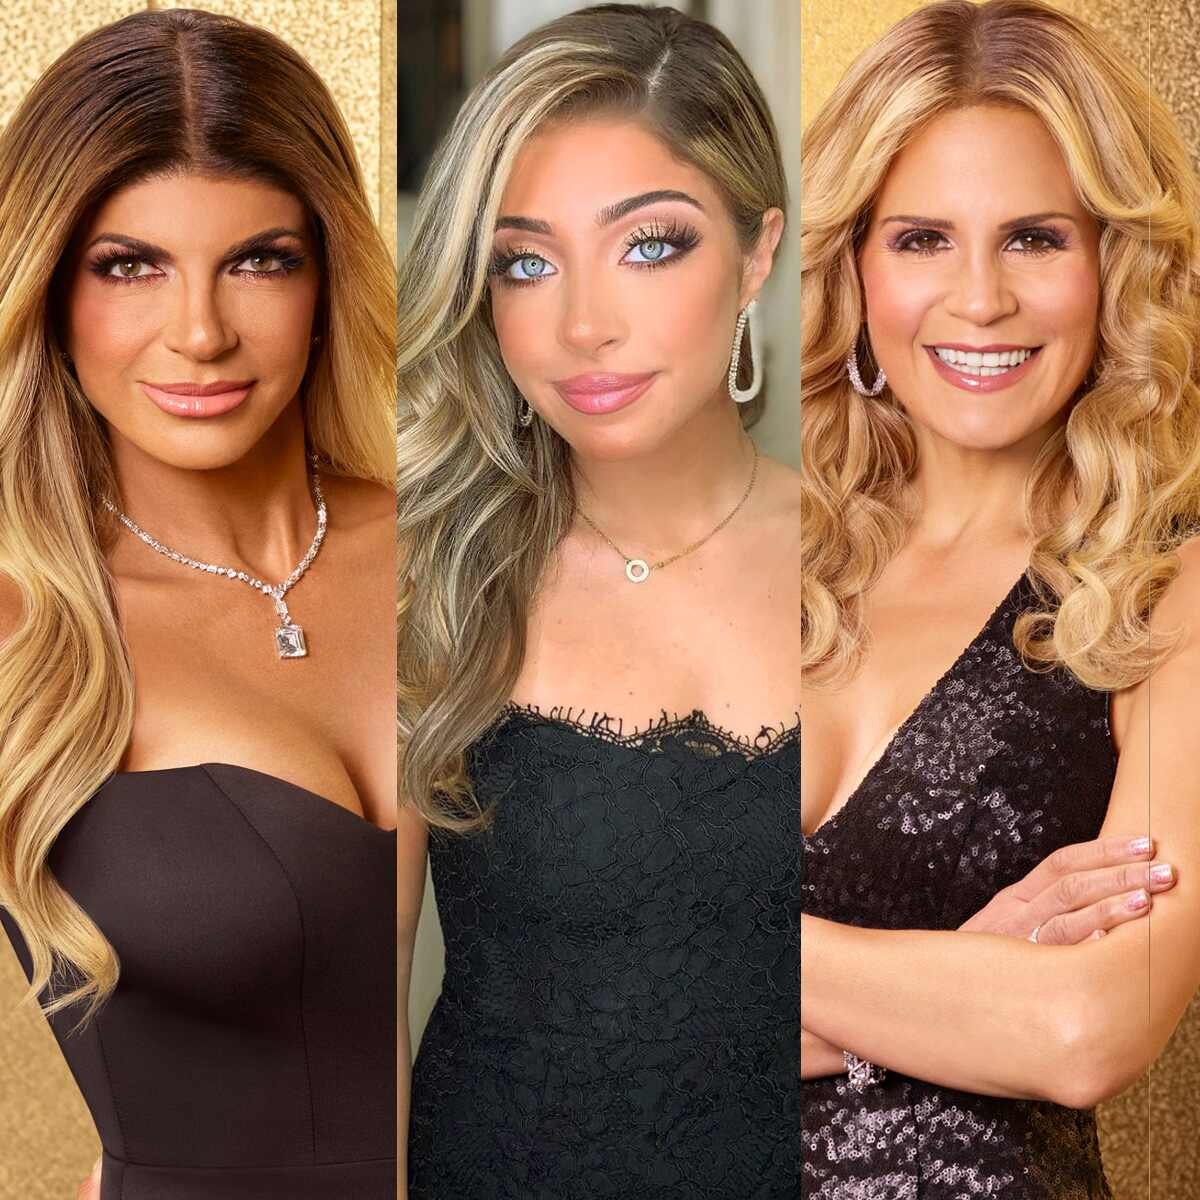 Teresa Giudice, Gia Giudice, Jackie Goldschneider, The Real Housewives of New Jersey